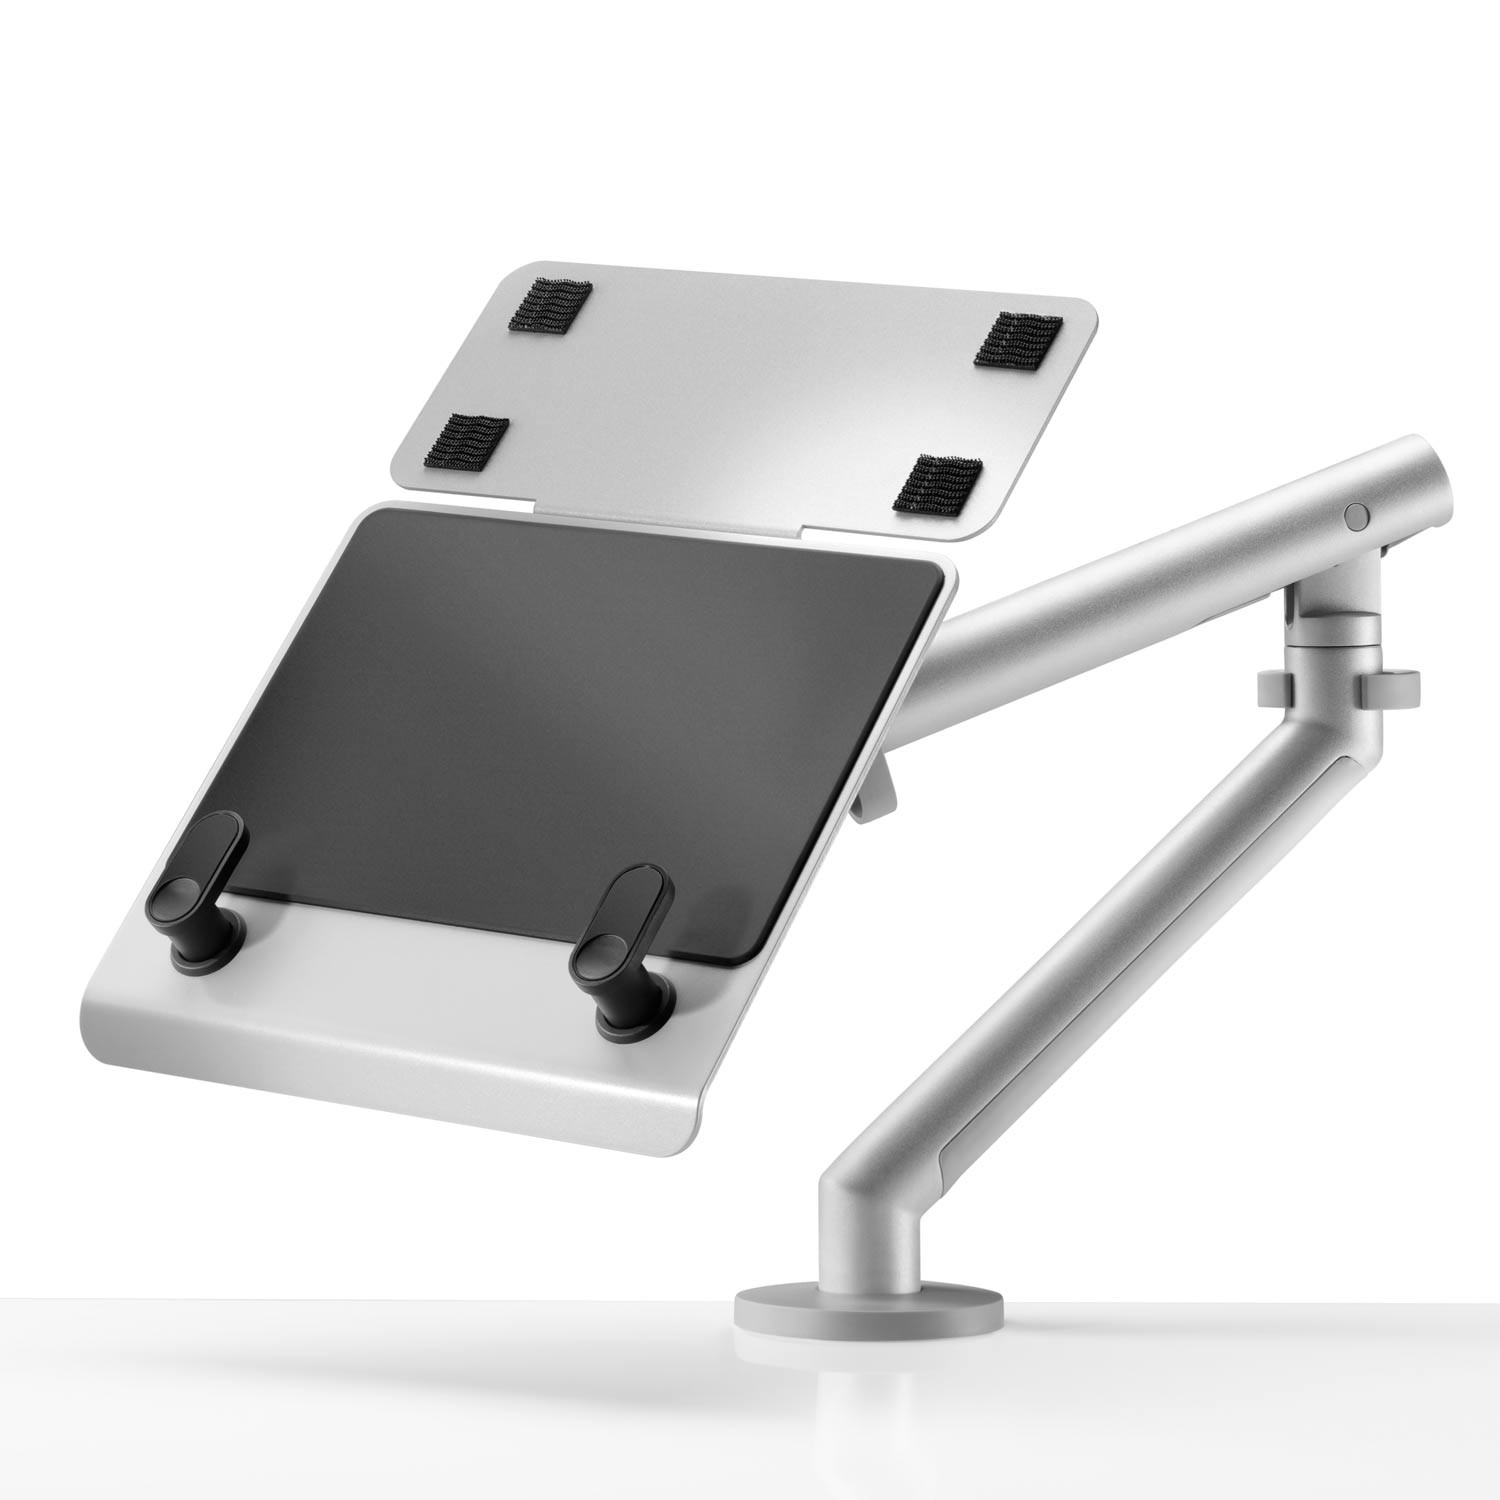 Laptop Mount with Docking Station Plate